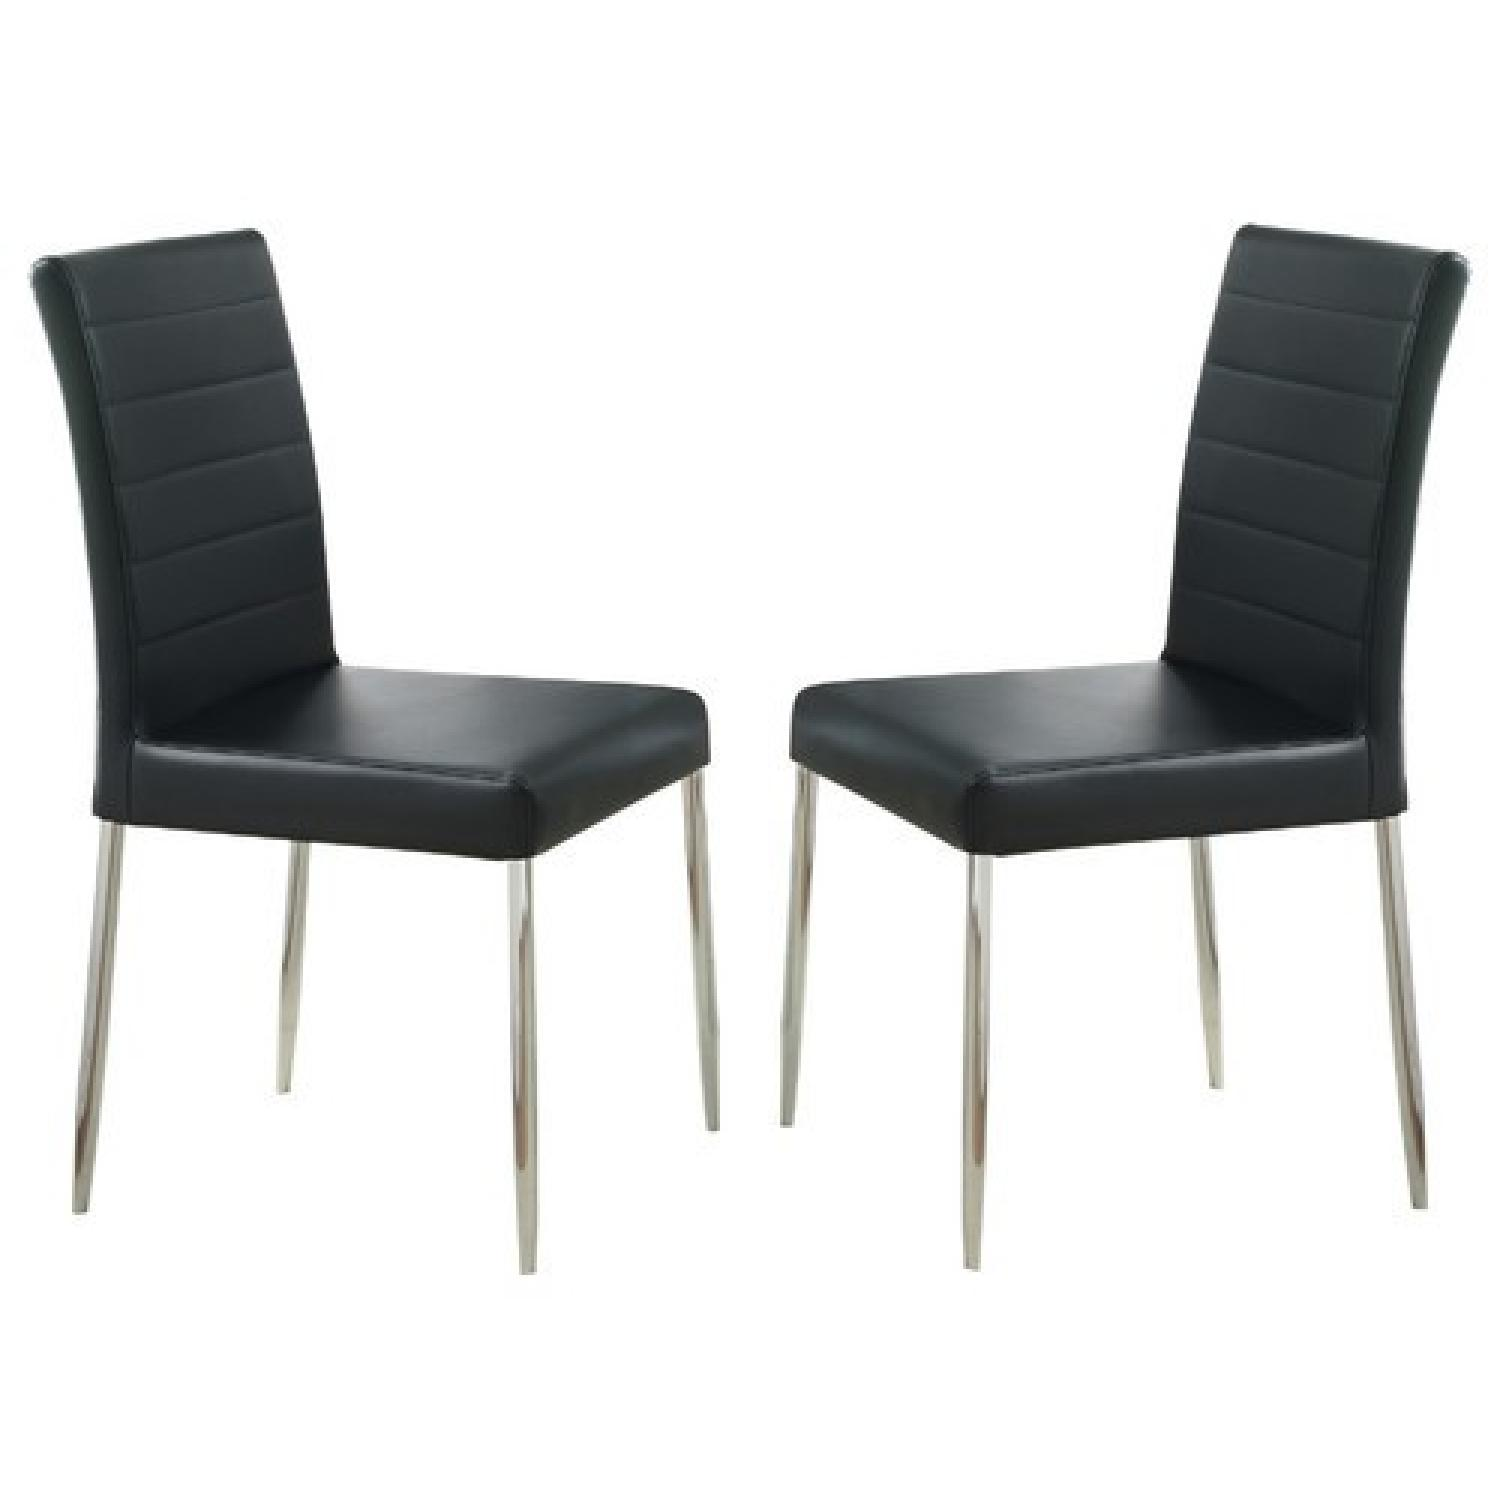 Strange Modern Dining Chair In Black Leatherette W Chrome Legs Caraccident5 Cool Chair Designs And Ideas Caraccident5Info